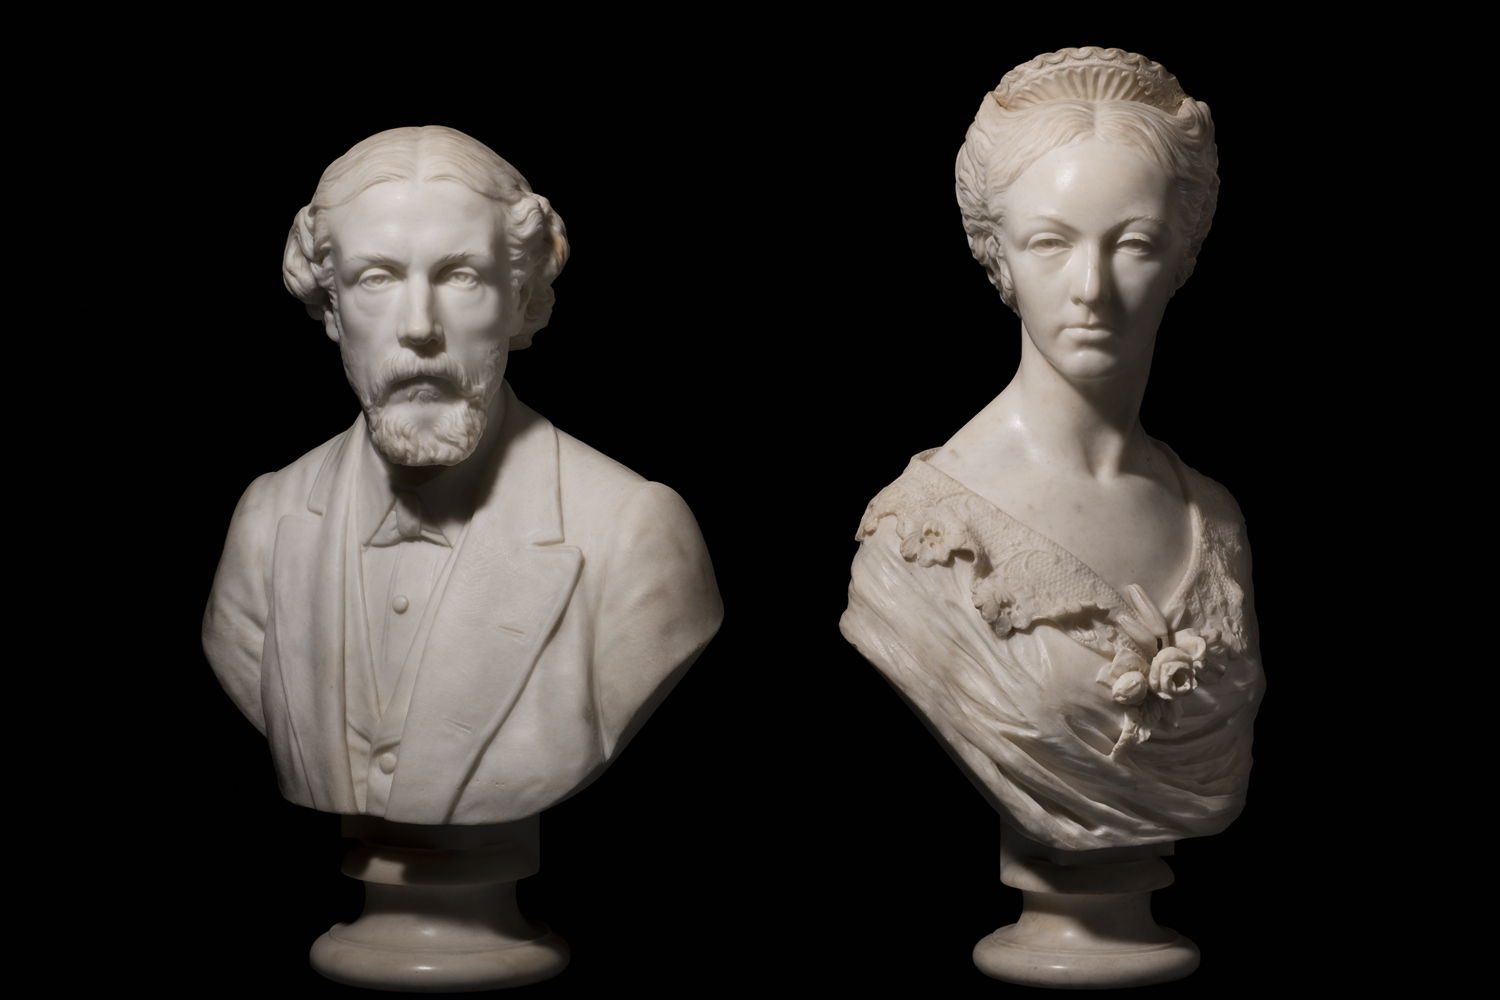 marble busts of jesse and marianne haworth